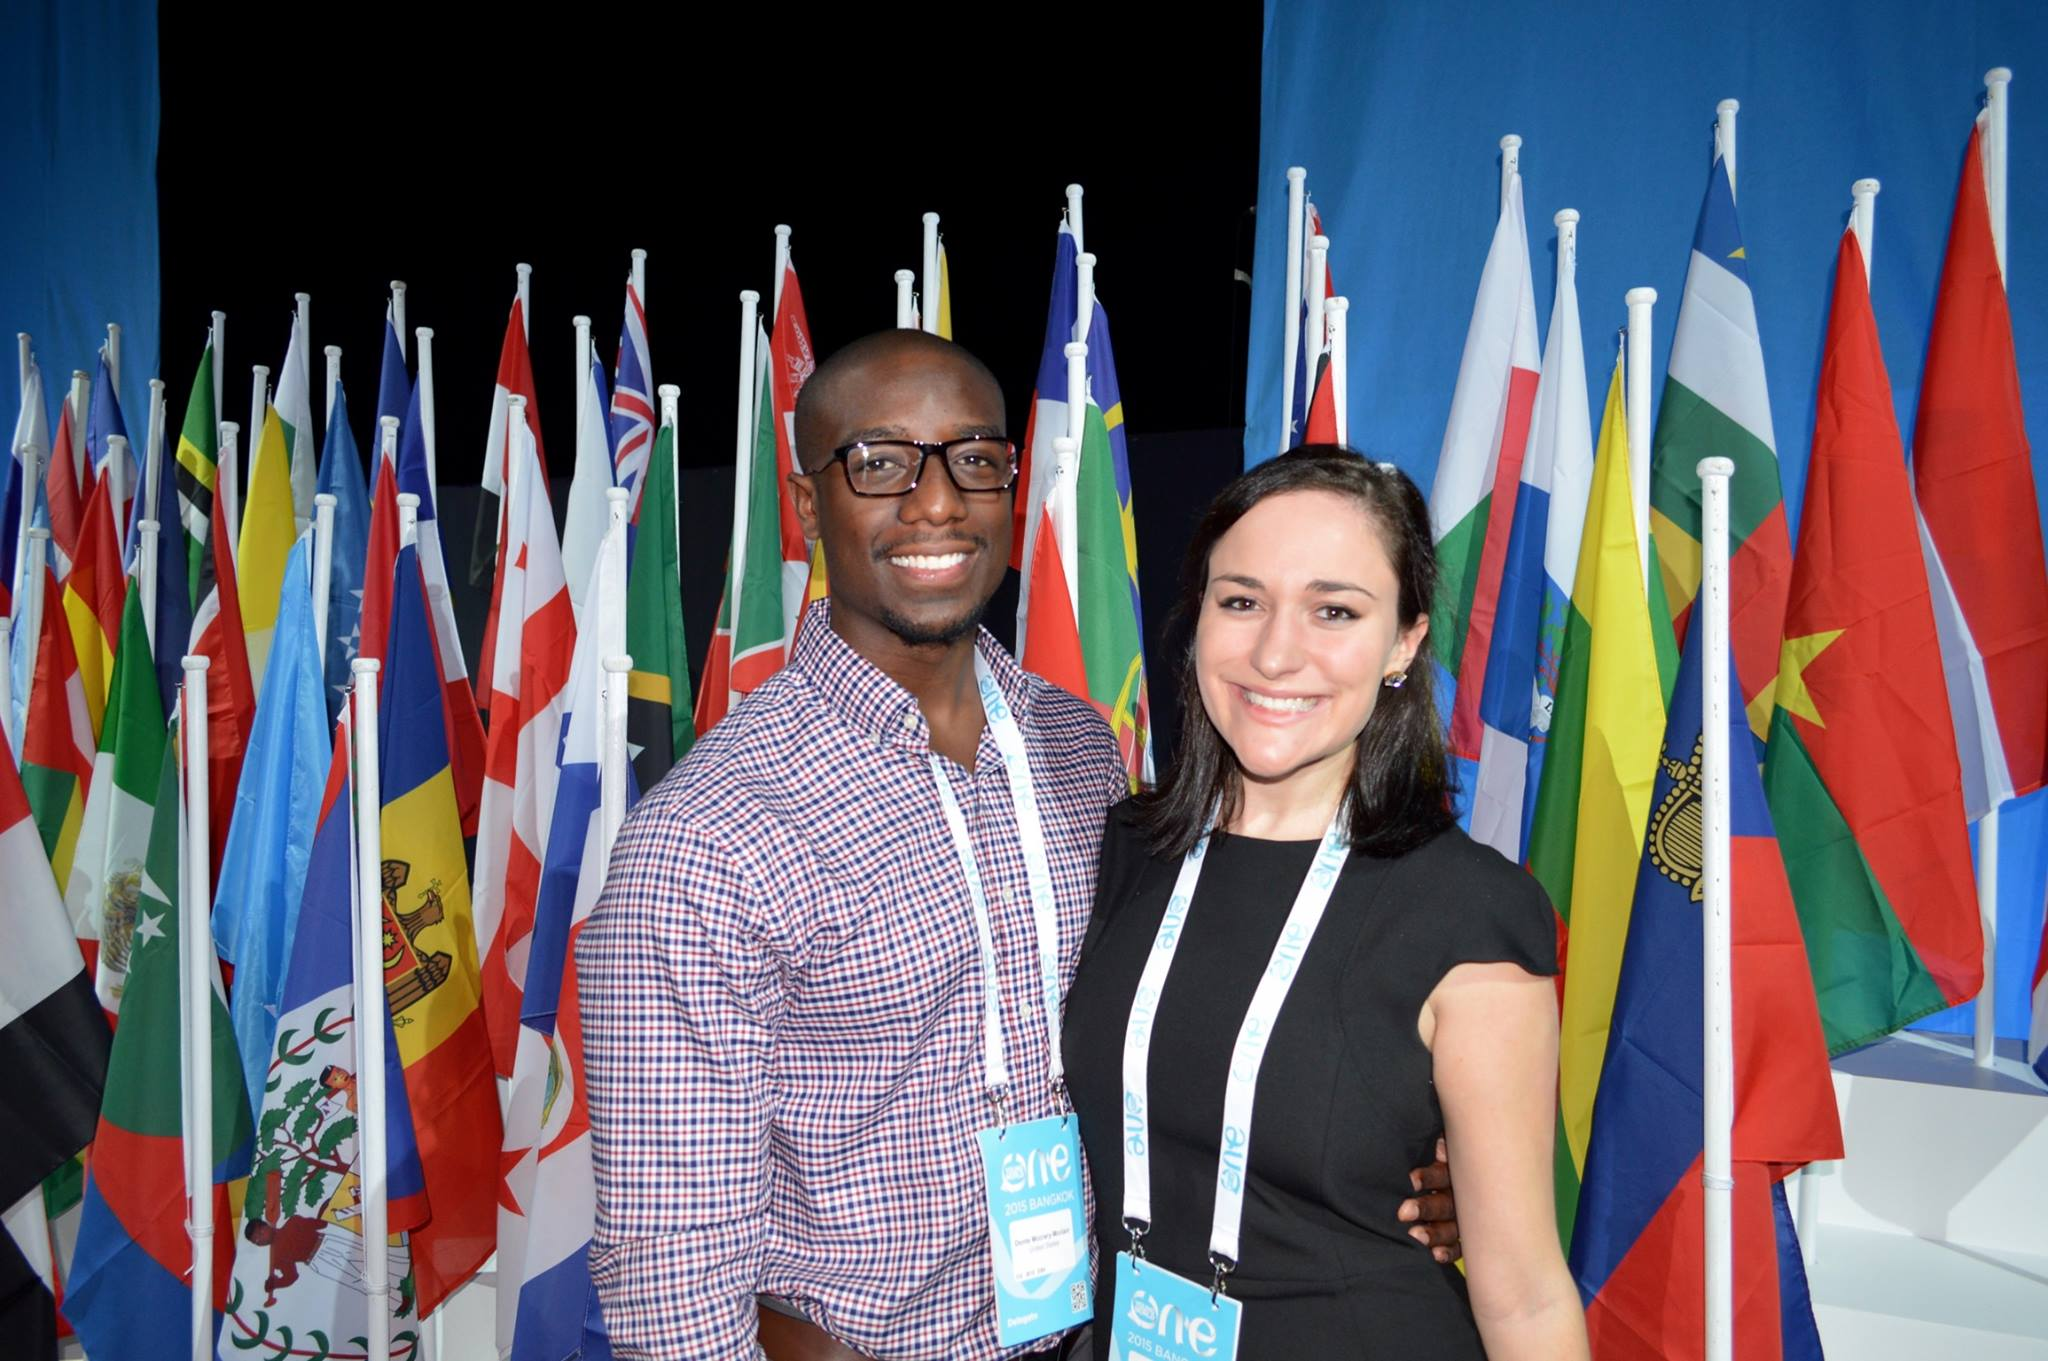 My friend Donte and I at One Young World Bangkok 2015